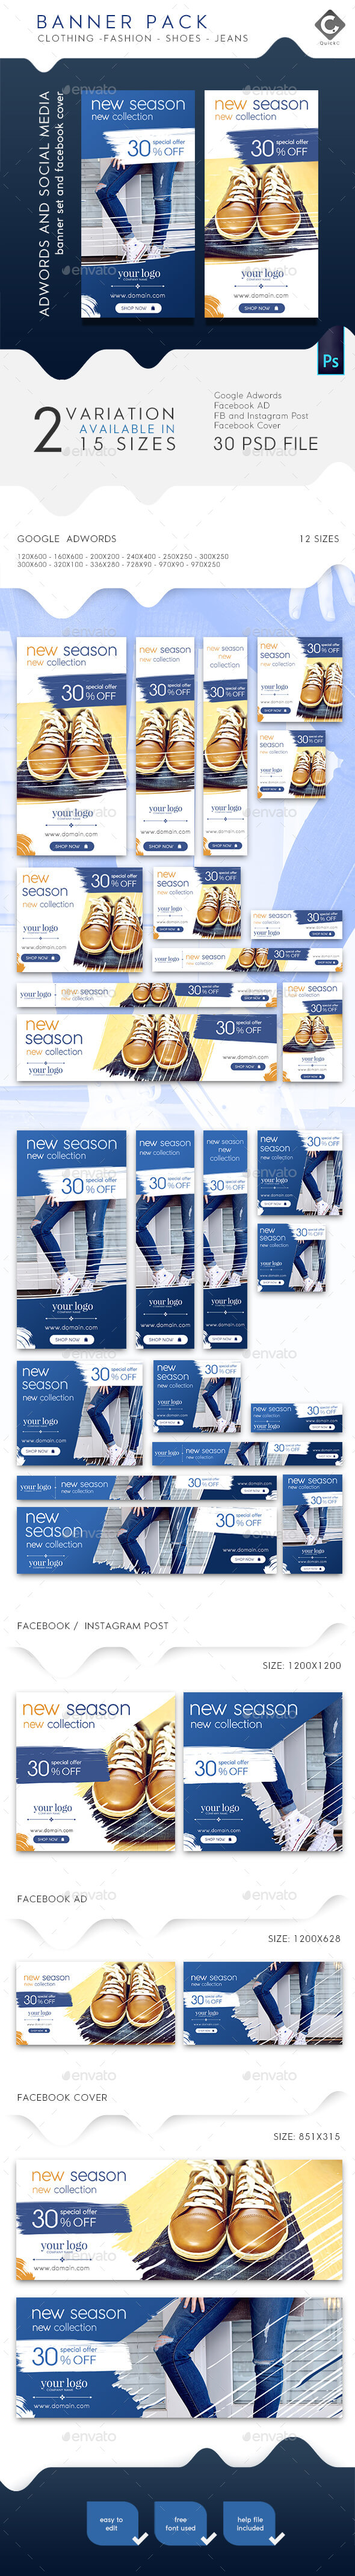 Clothing Banner Pack - Banners & Ads Web Elements